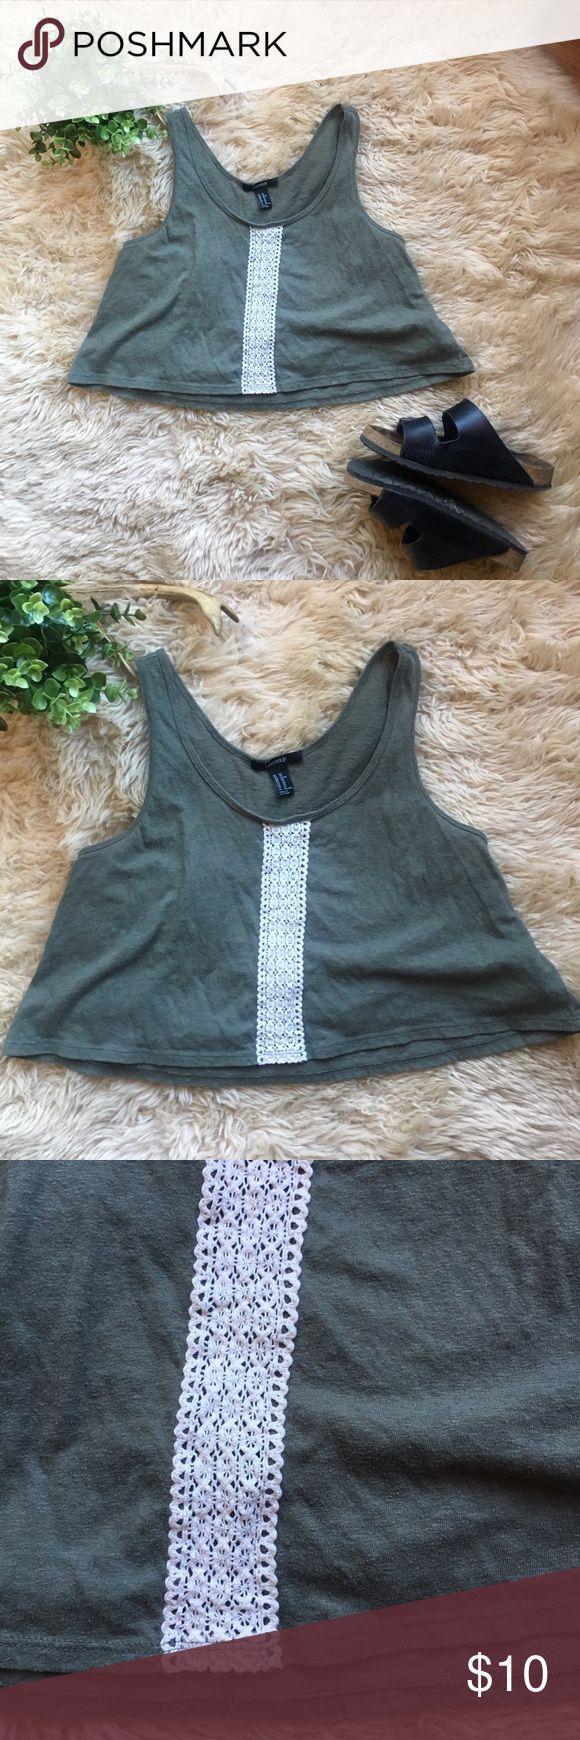 Forever 21 Festival Crop Top Forever 21 XS Festival Crop Top. Green with a strip of crochet detailing. Pre-owned, some light wear. Pair with palazzo pants or high waisted shorts and some Birkenstocks and your fav concert tix. Forever 21 Tops Crop Tops